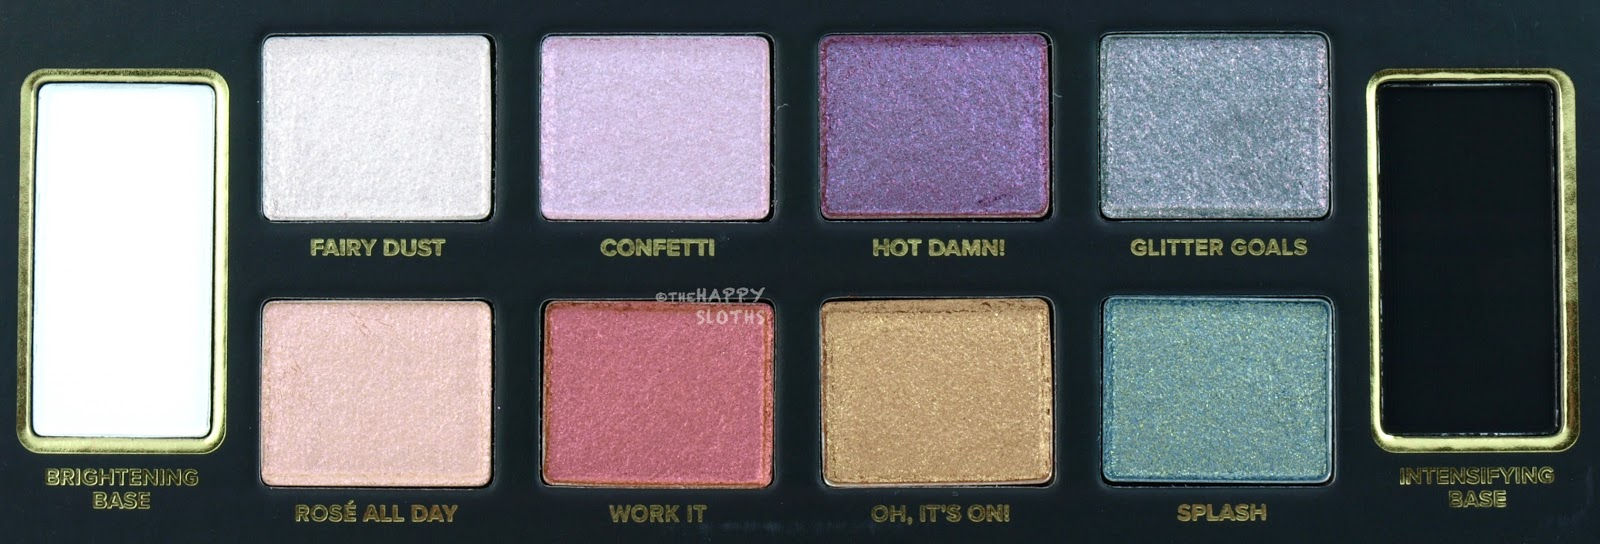 Too Faced Glitter Bomb Eyeshadow Palette: Review and Swatches